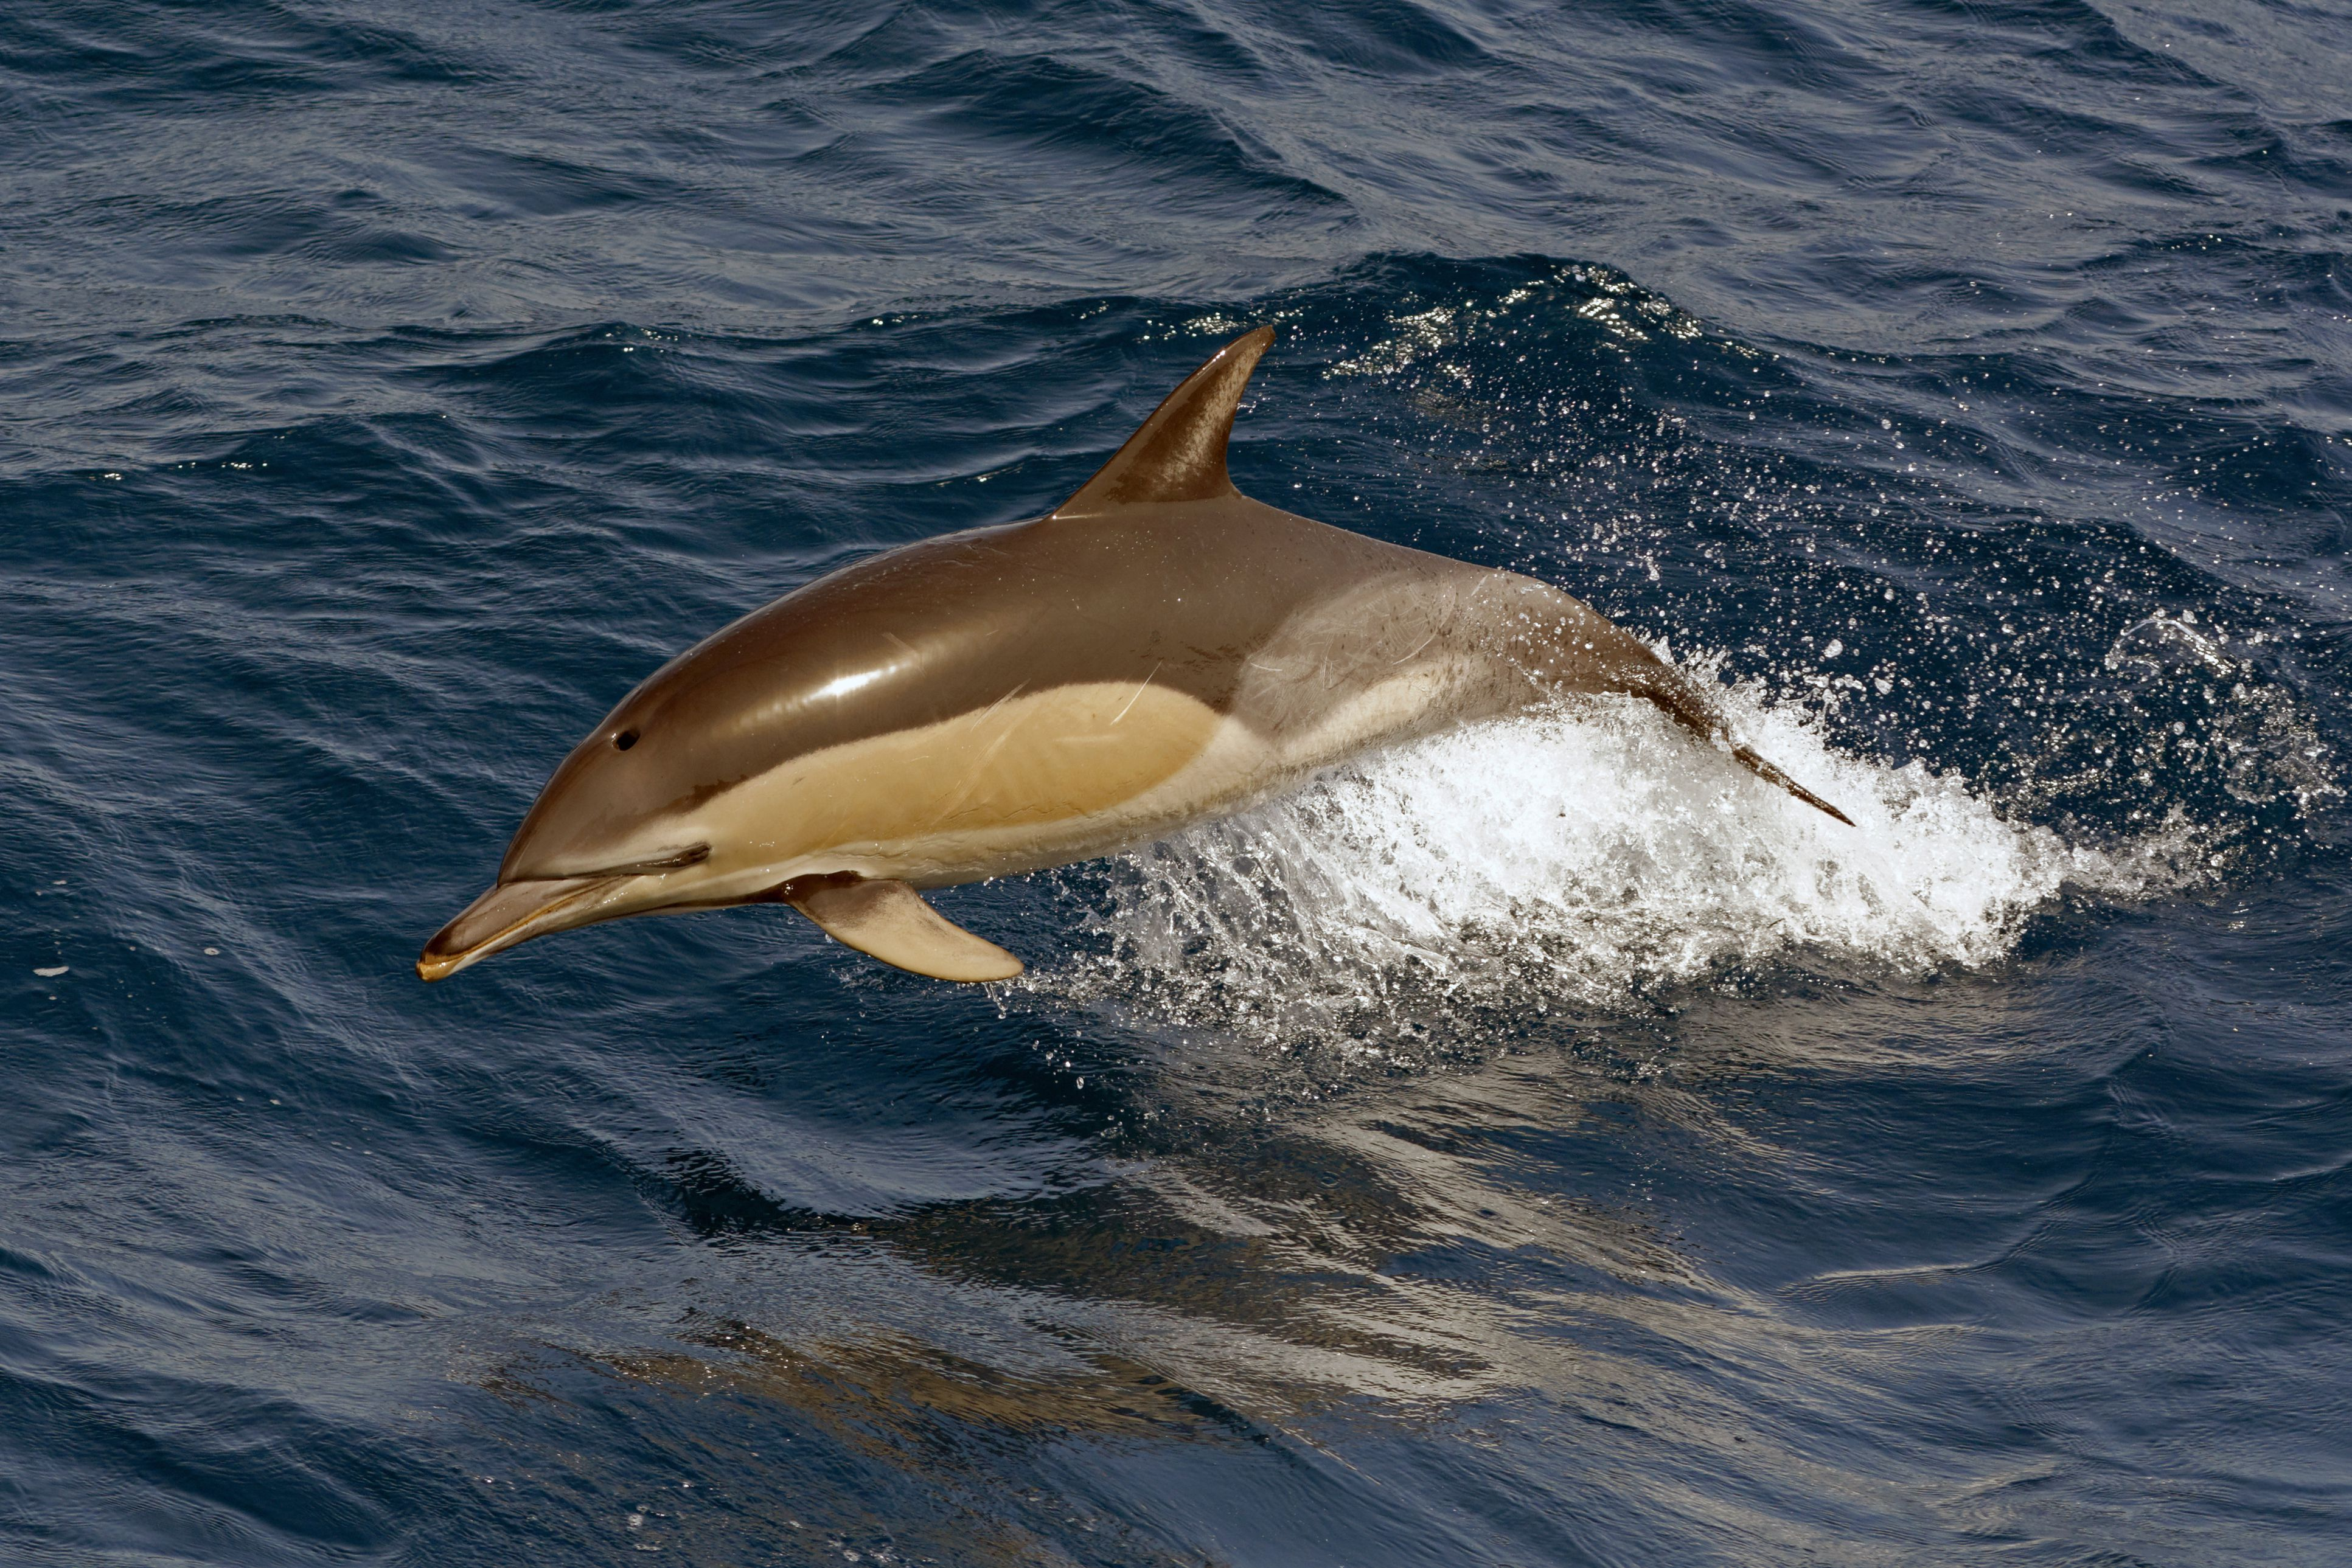 why do whales u0026 dolphins strand themselves on beaches